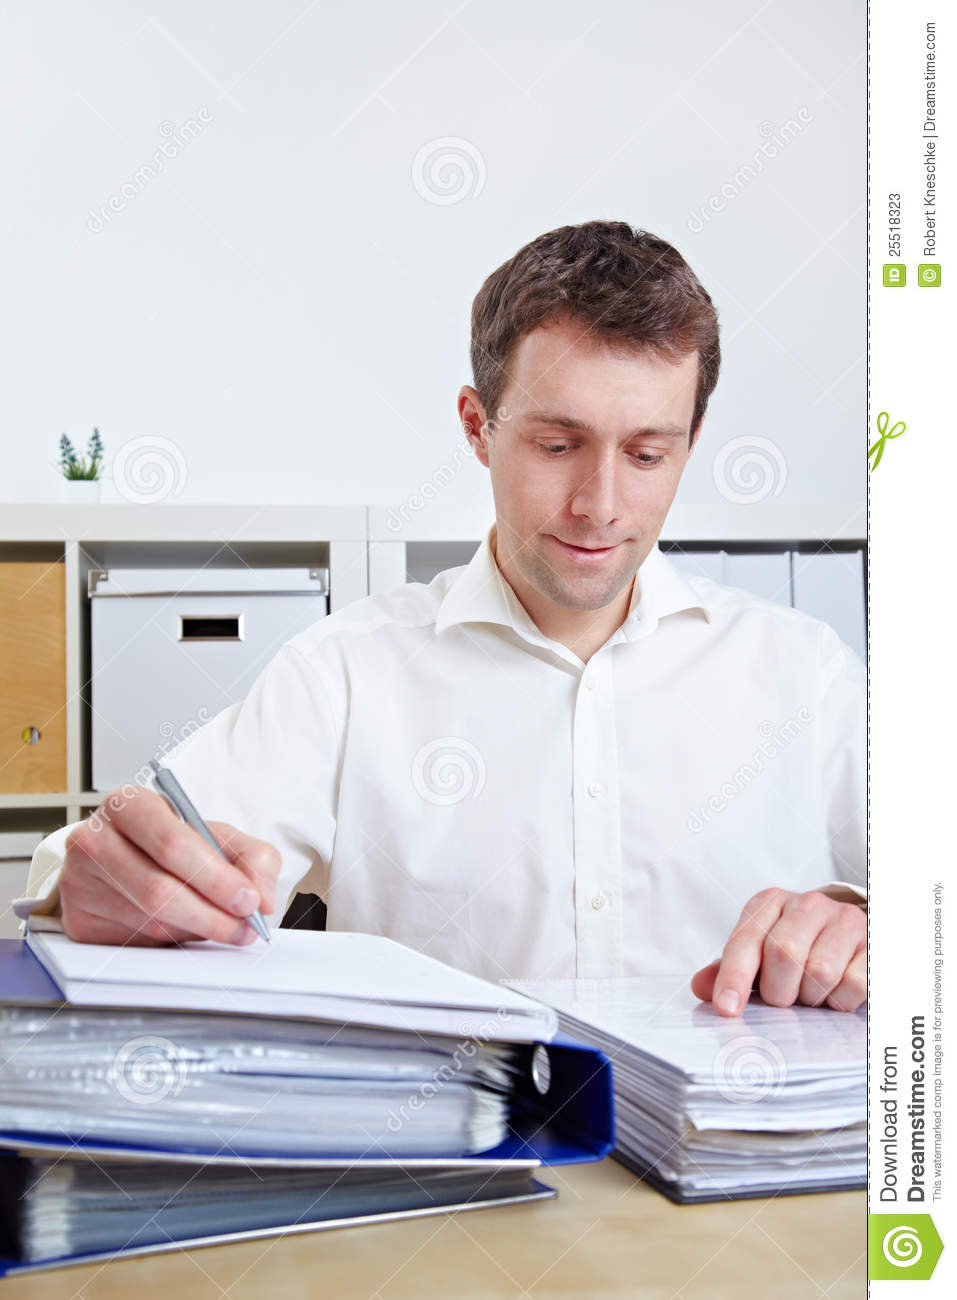 Manager Working At His Desk Stock Photos - Image: 25518323